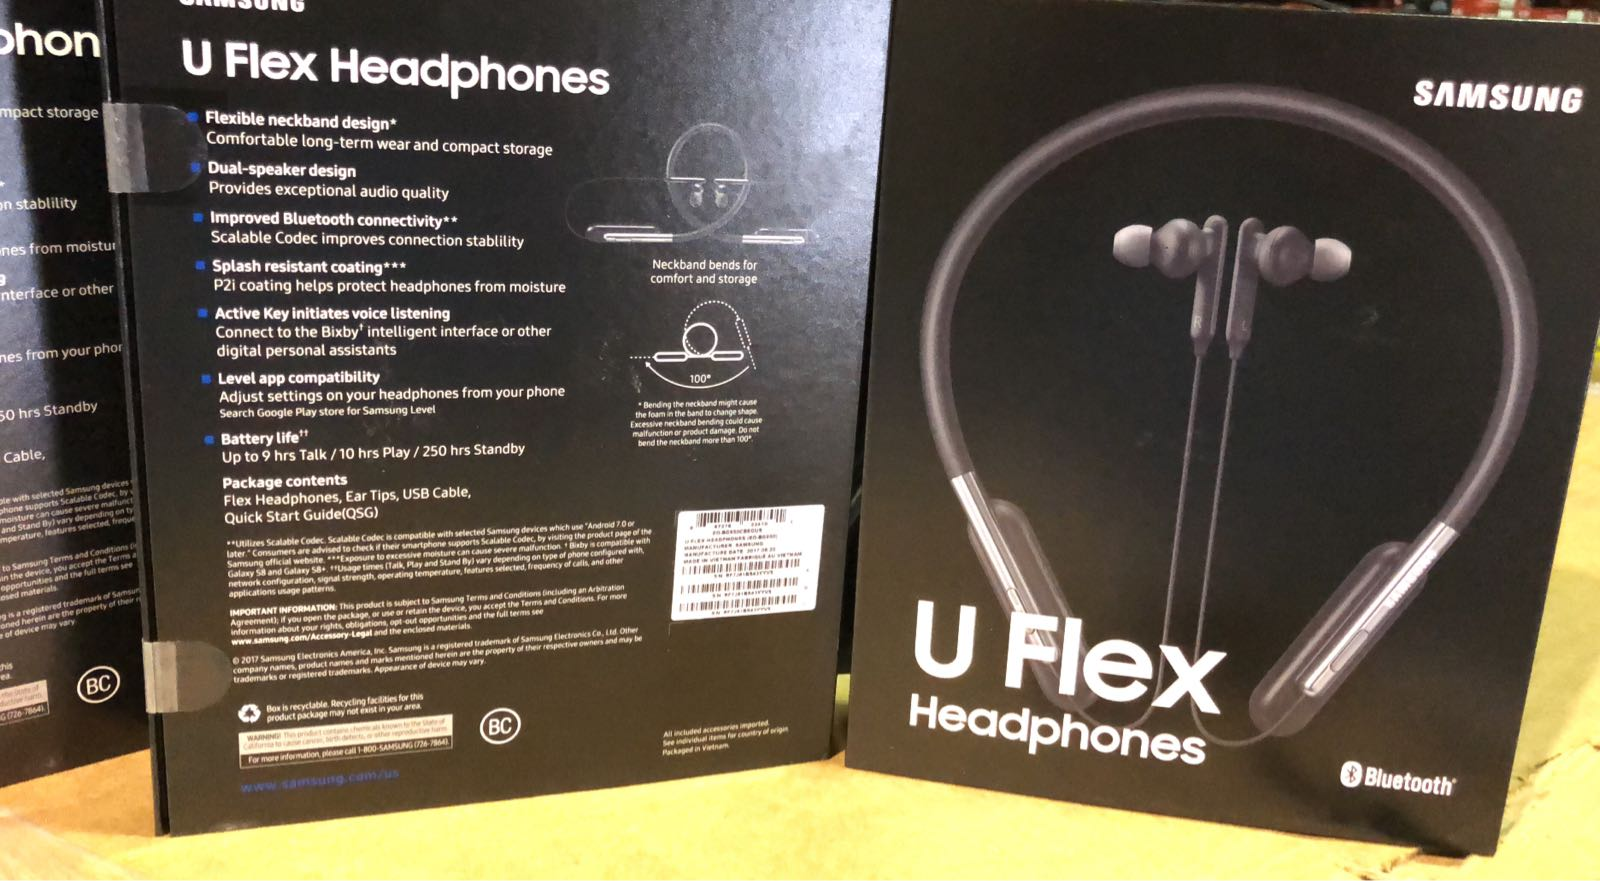 ✨LOW PRICE | SAMSUNG U FLEX BLUETOOTH HEADPHONES✨ ?MODEL: EO-BG950CBEGUS $37 FOB MIAMI? PM for Quantity Pricing.